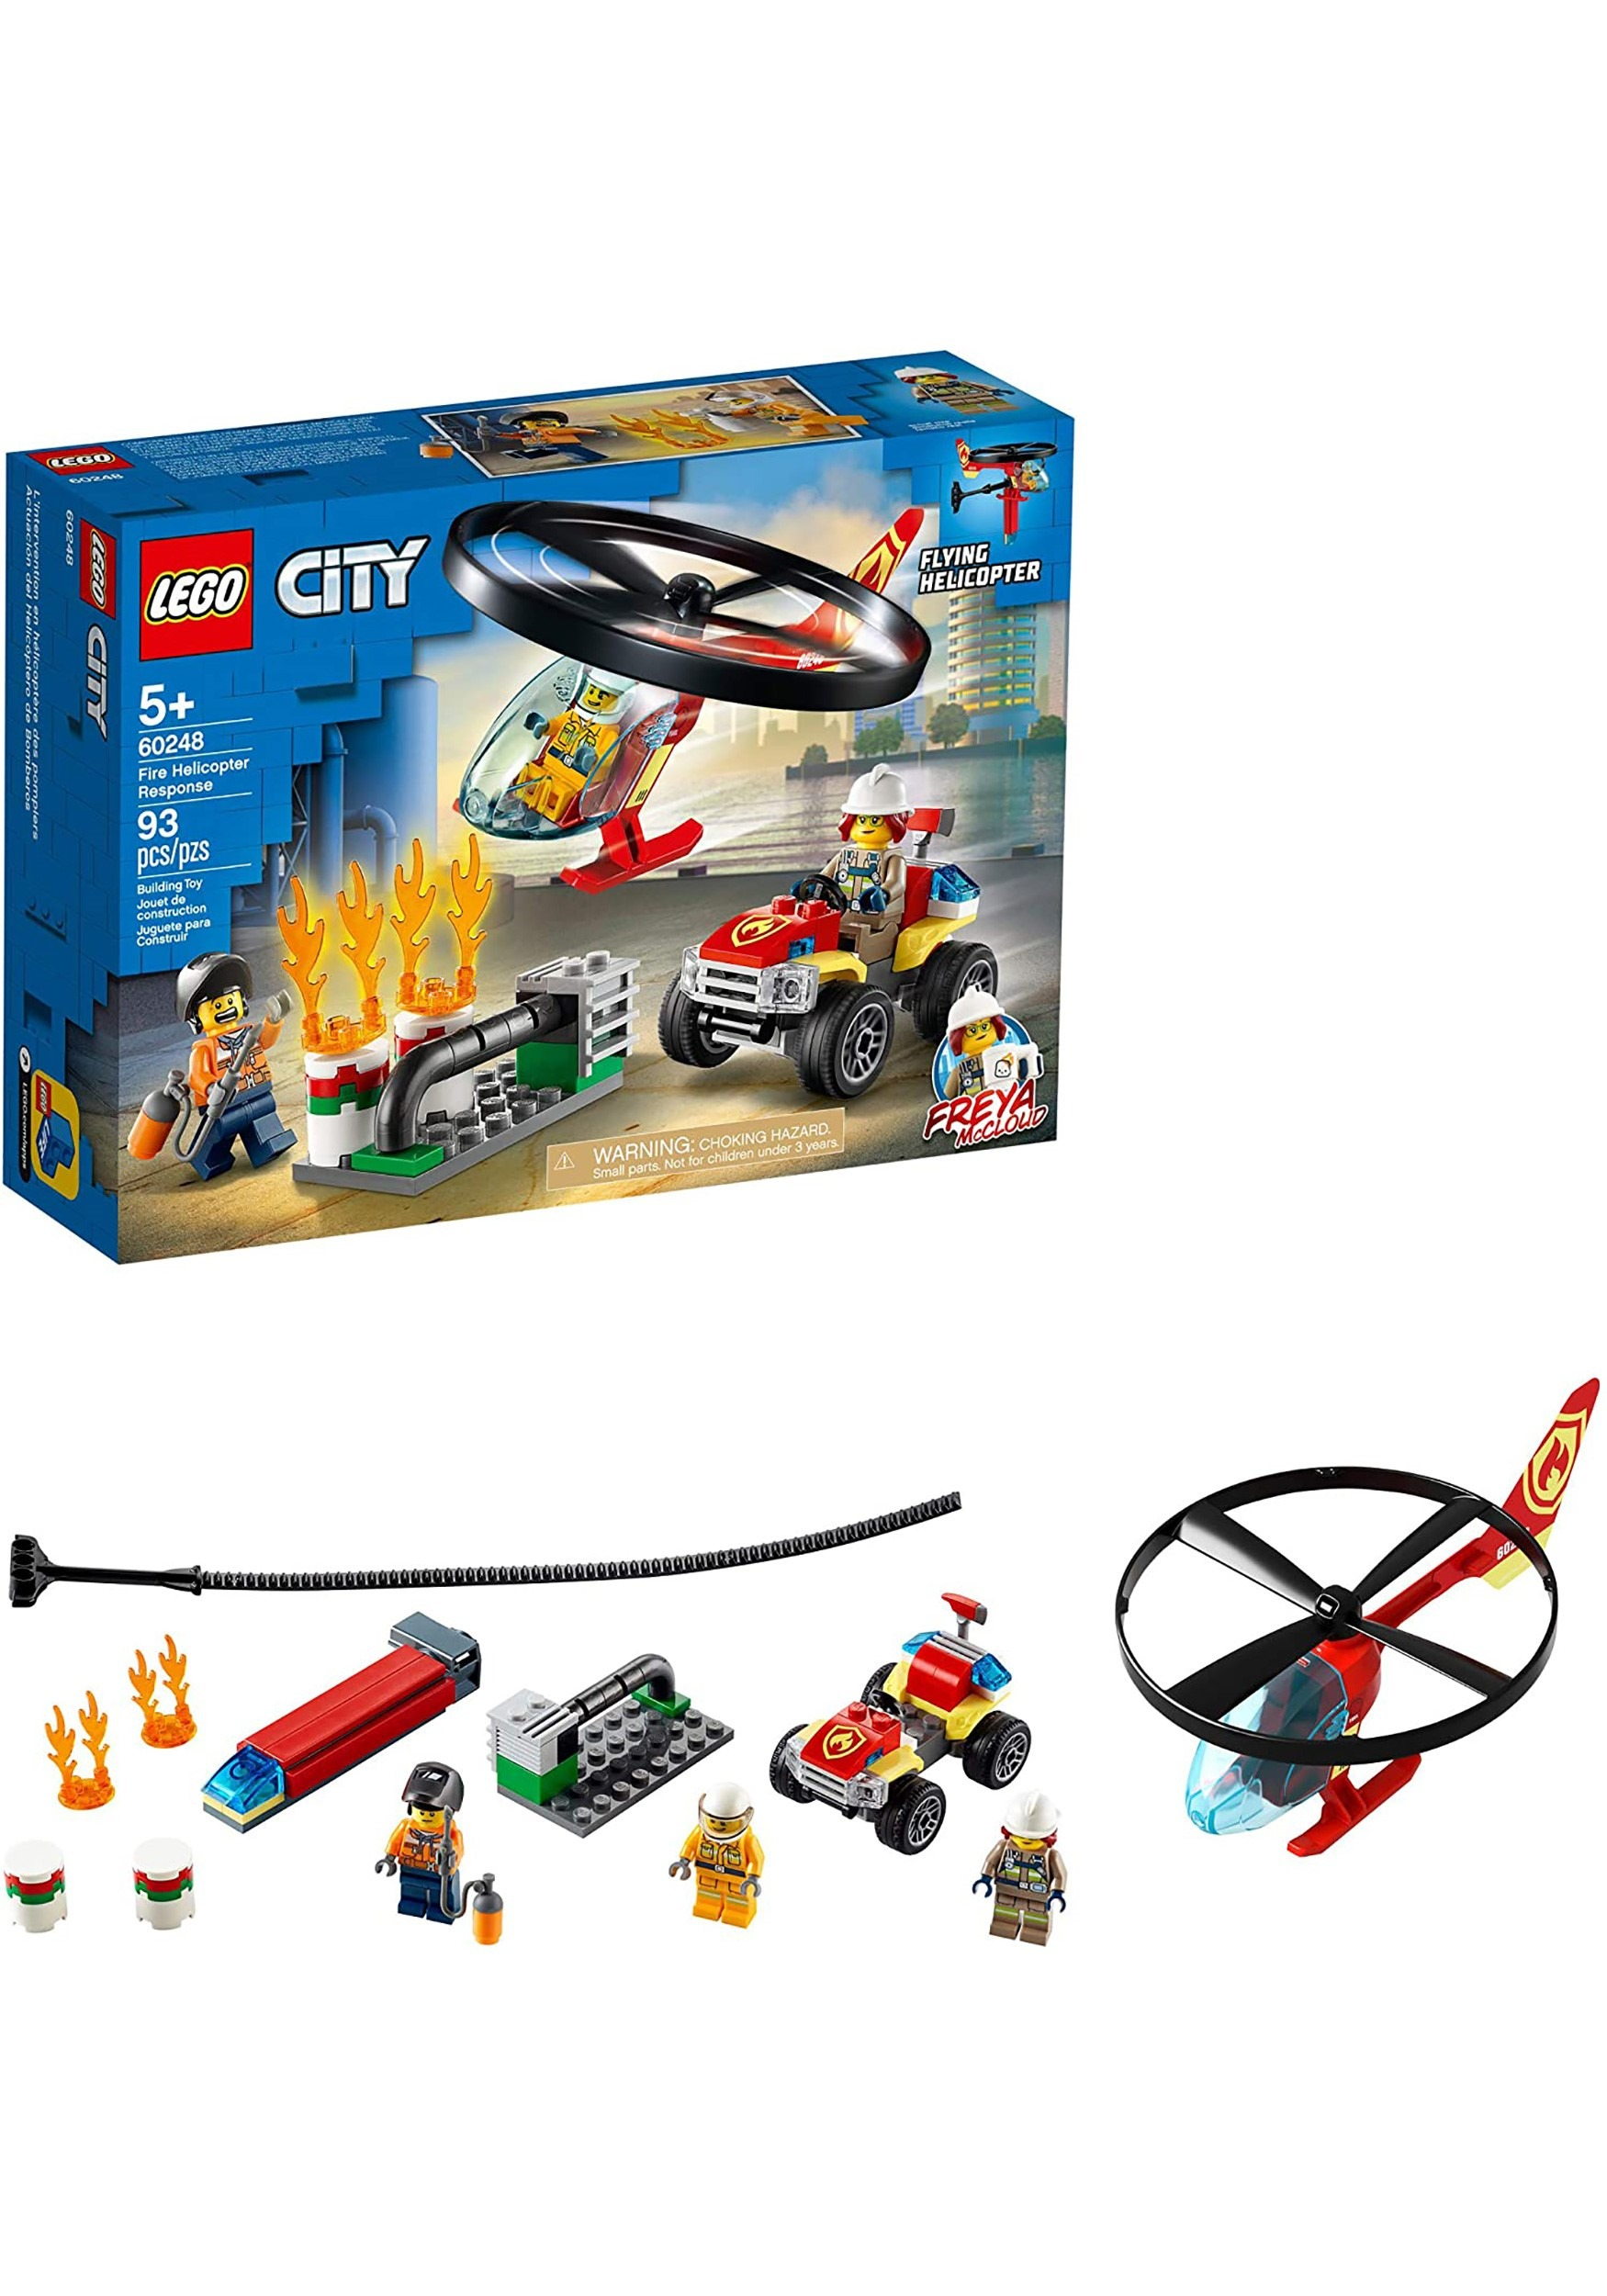 Fire Helicopter Response Building Set LEGO City